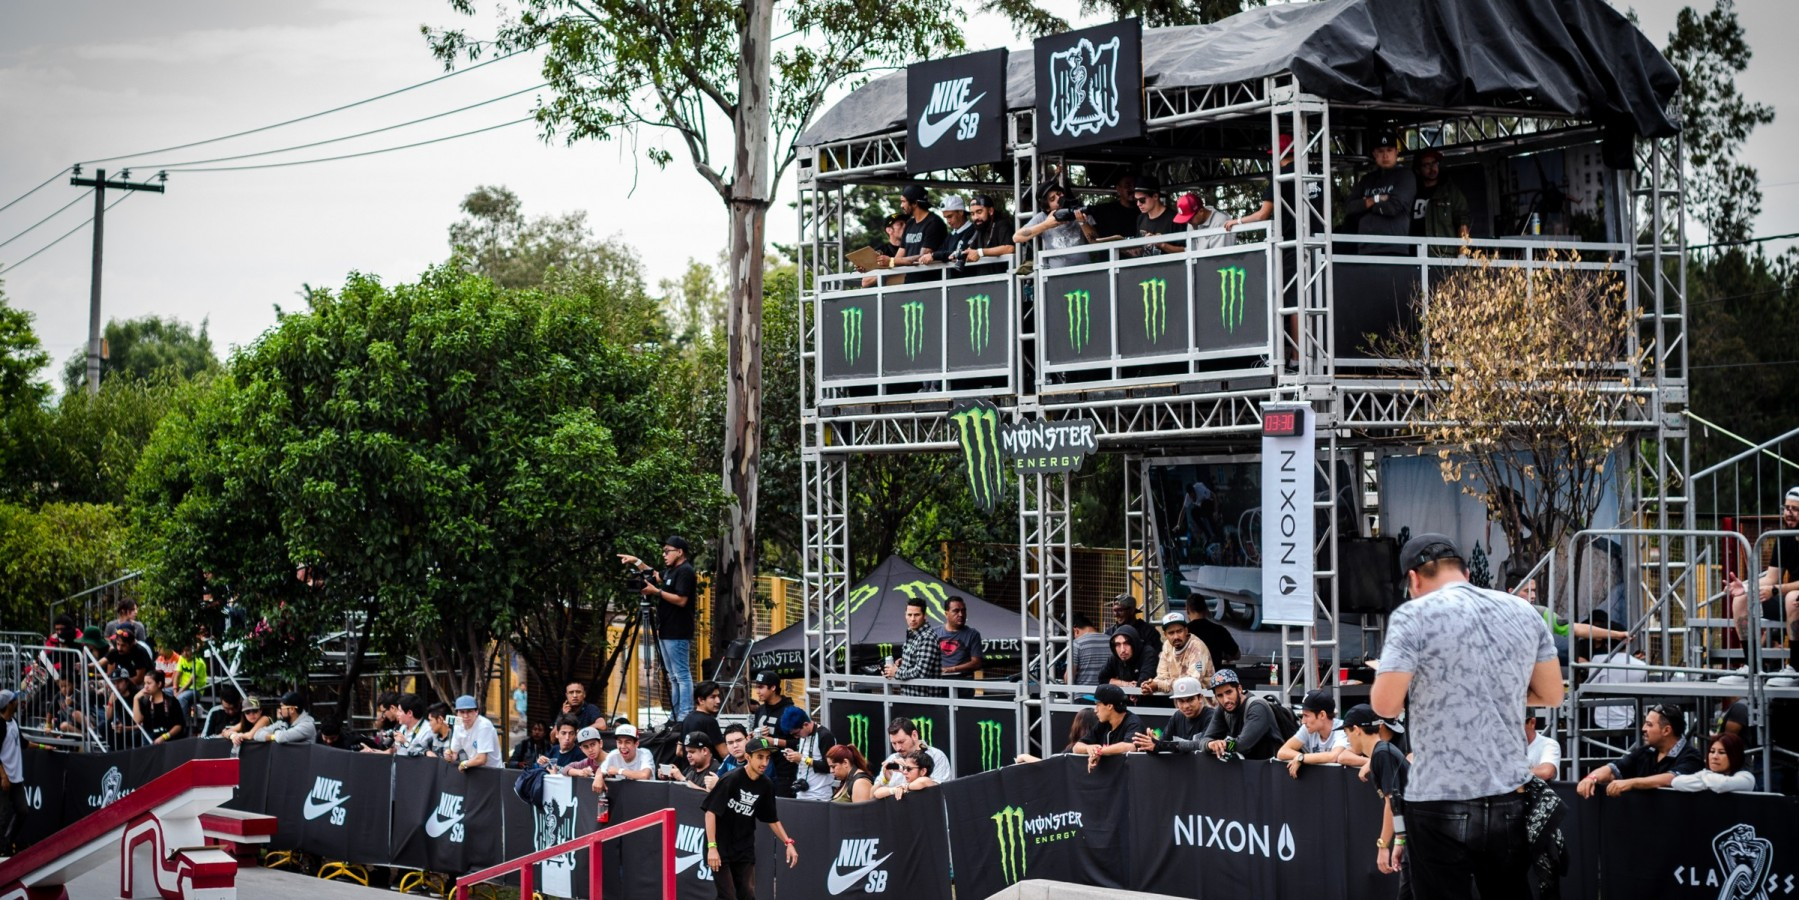 Latin skate competition at Mexico City